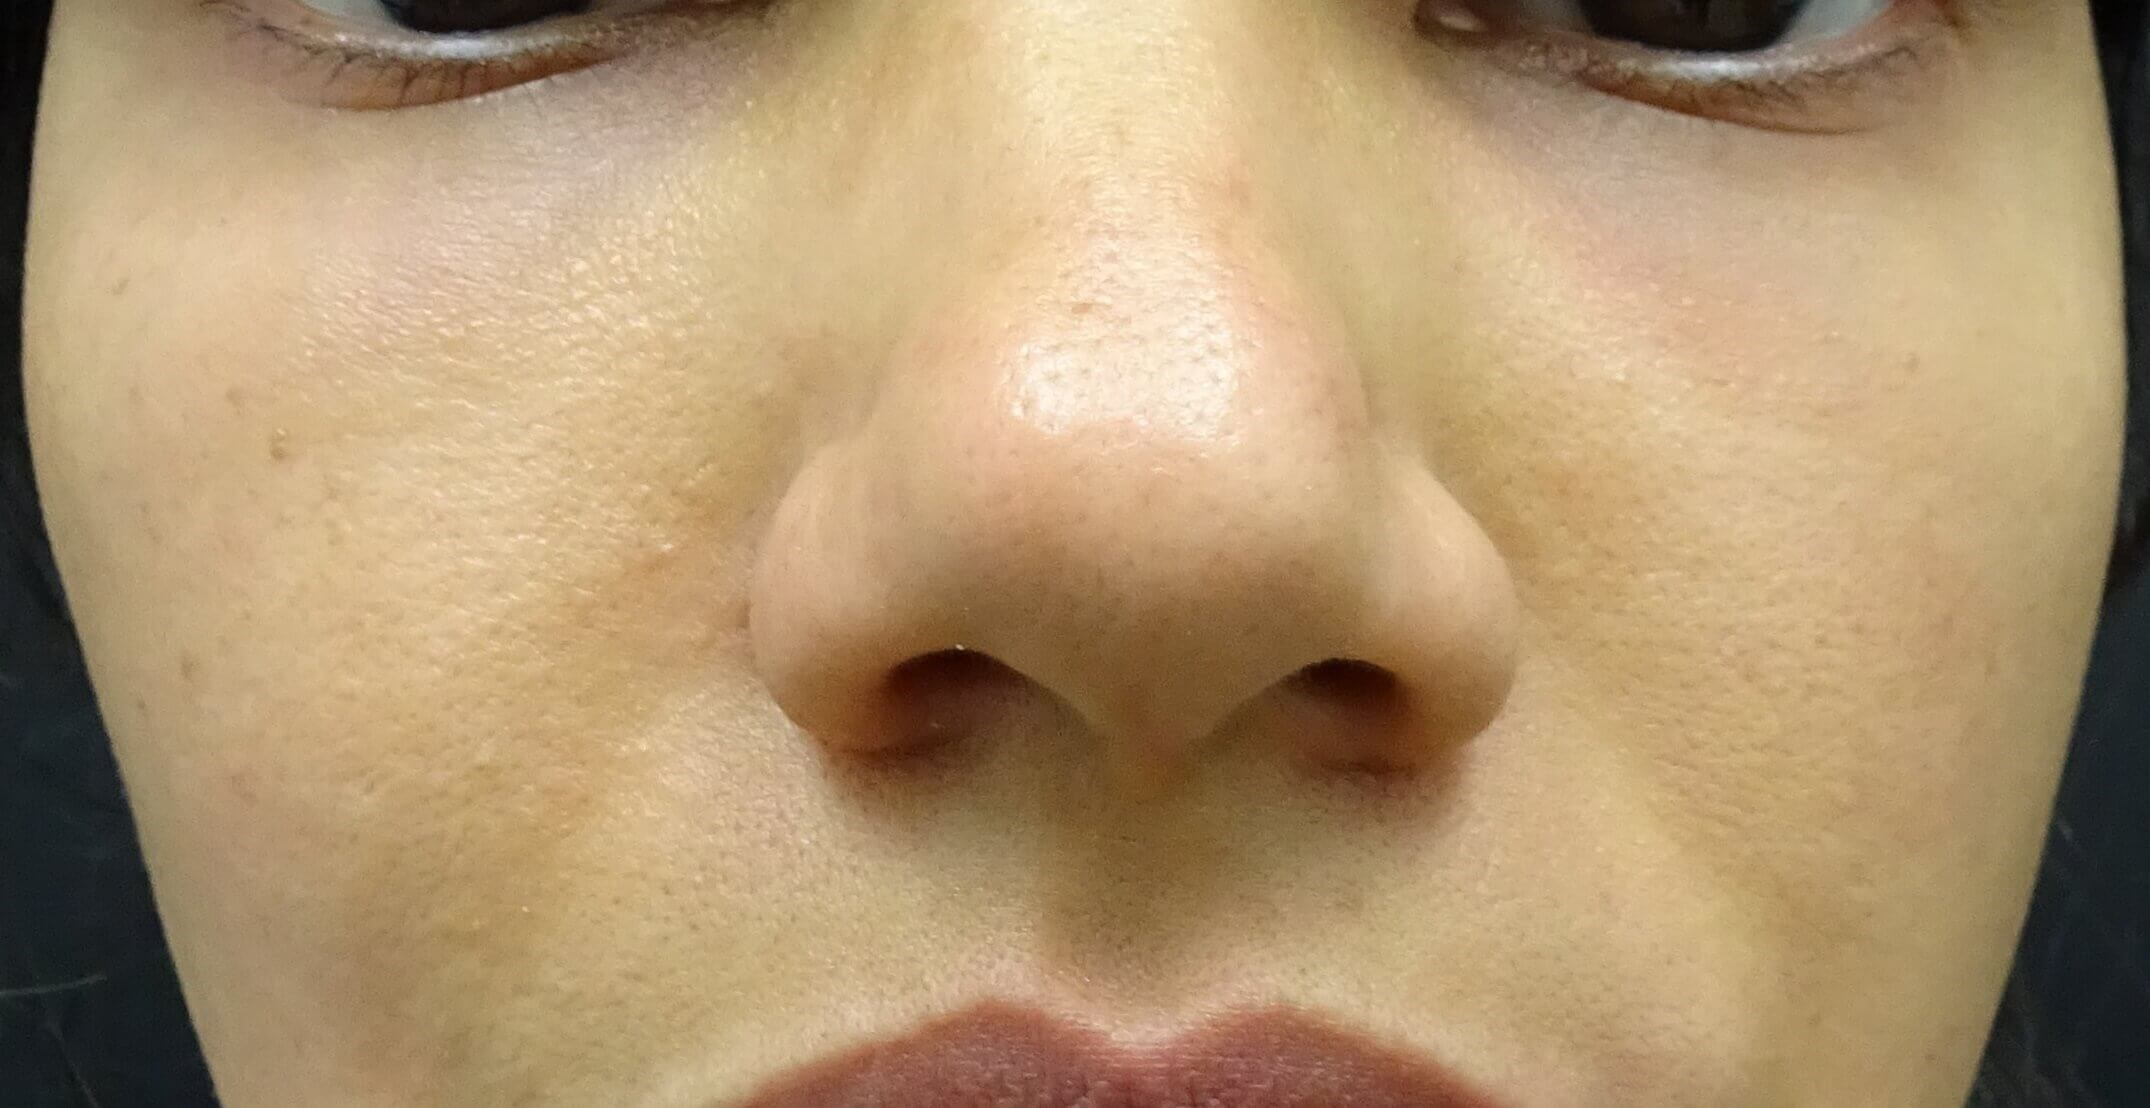 Restylane & Juvederm in Vegas 2 Days After Restylane